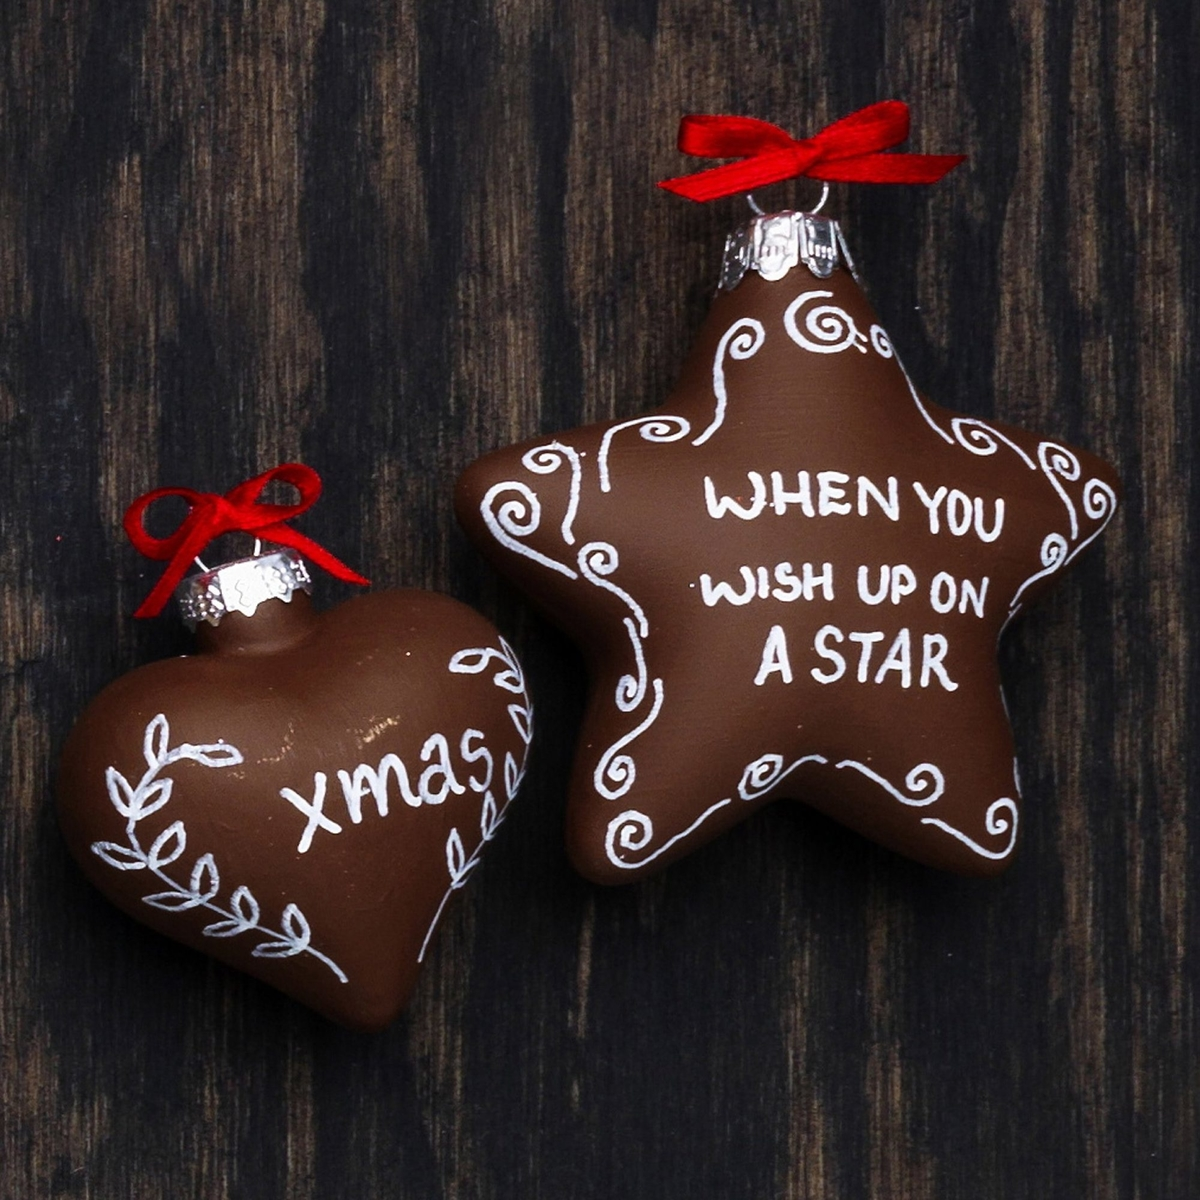 Gingerbread biscuits in the tree